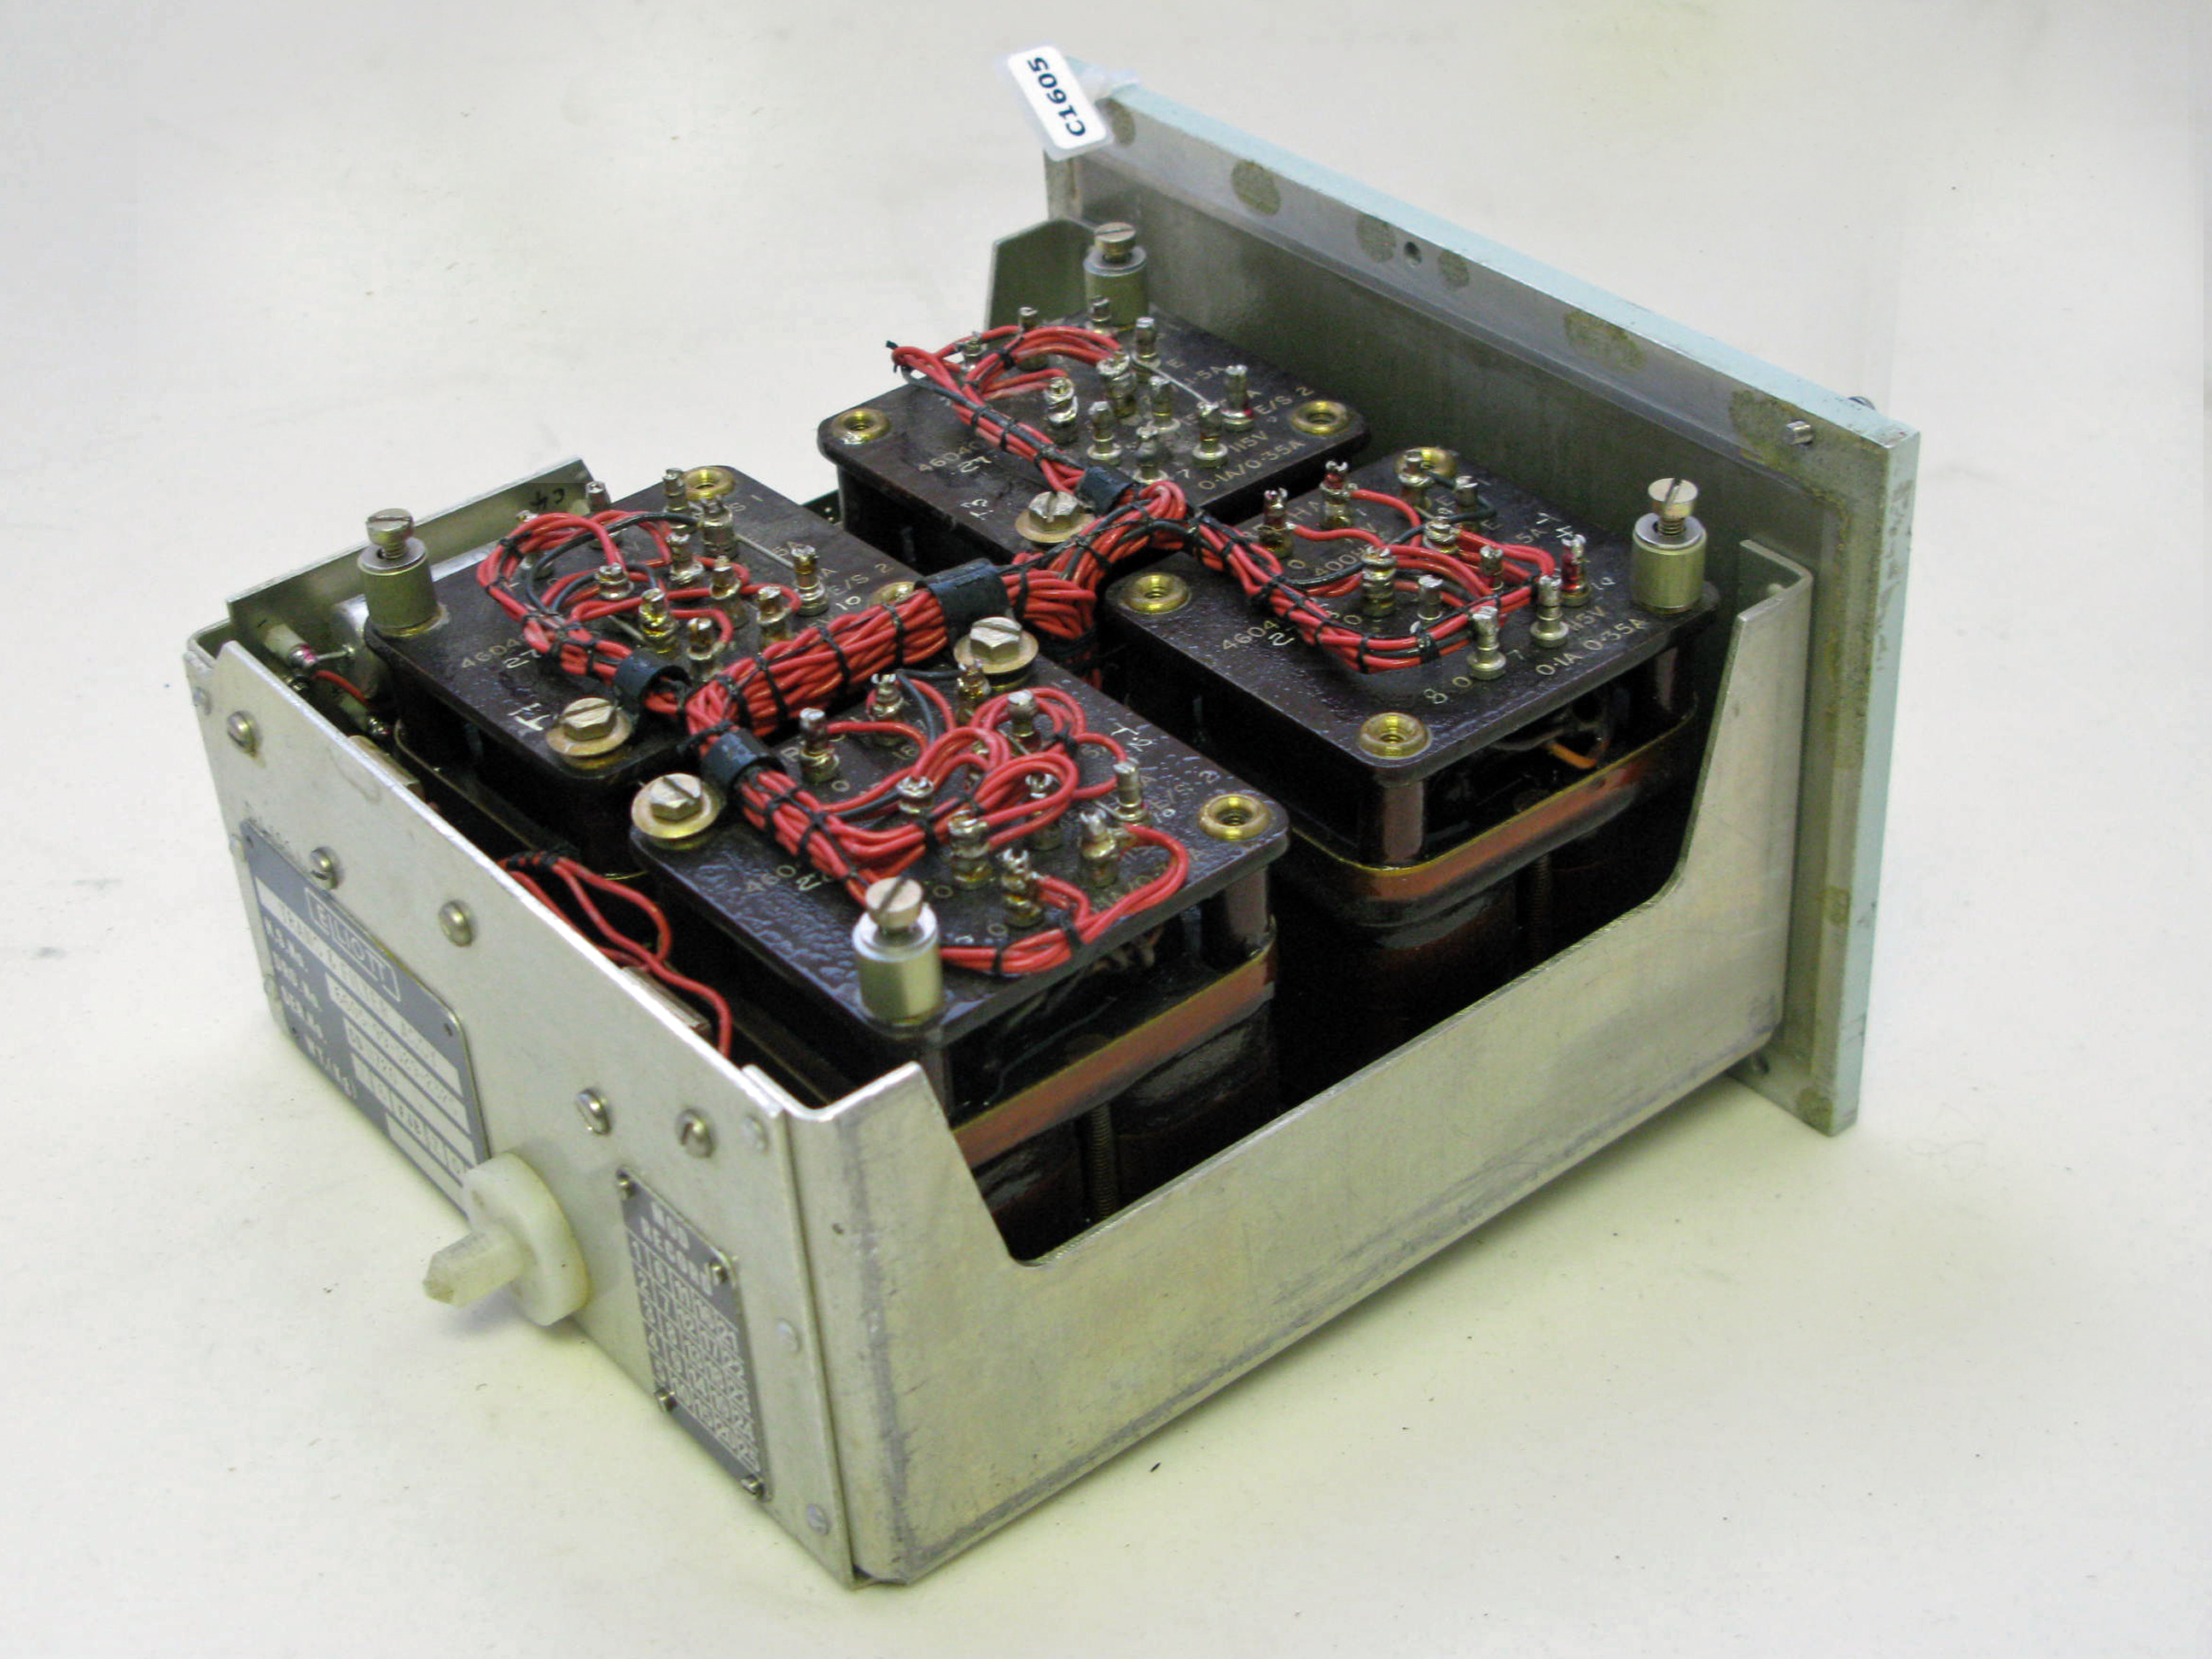 NCS1 Transformer and Filter Assy